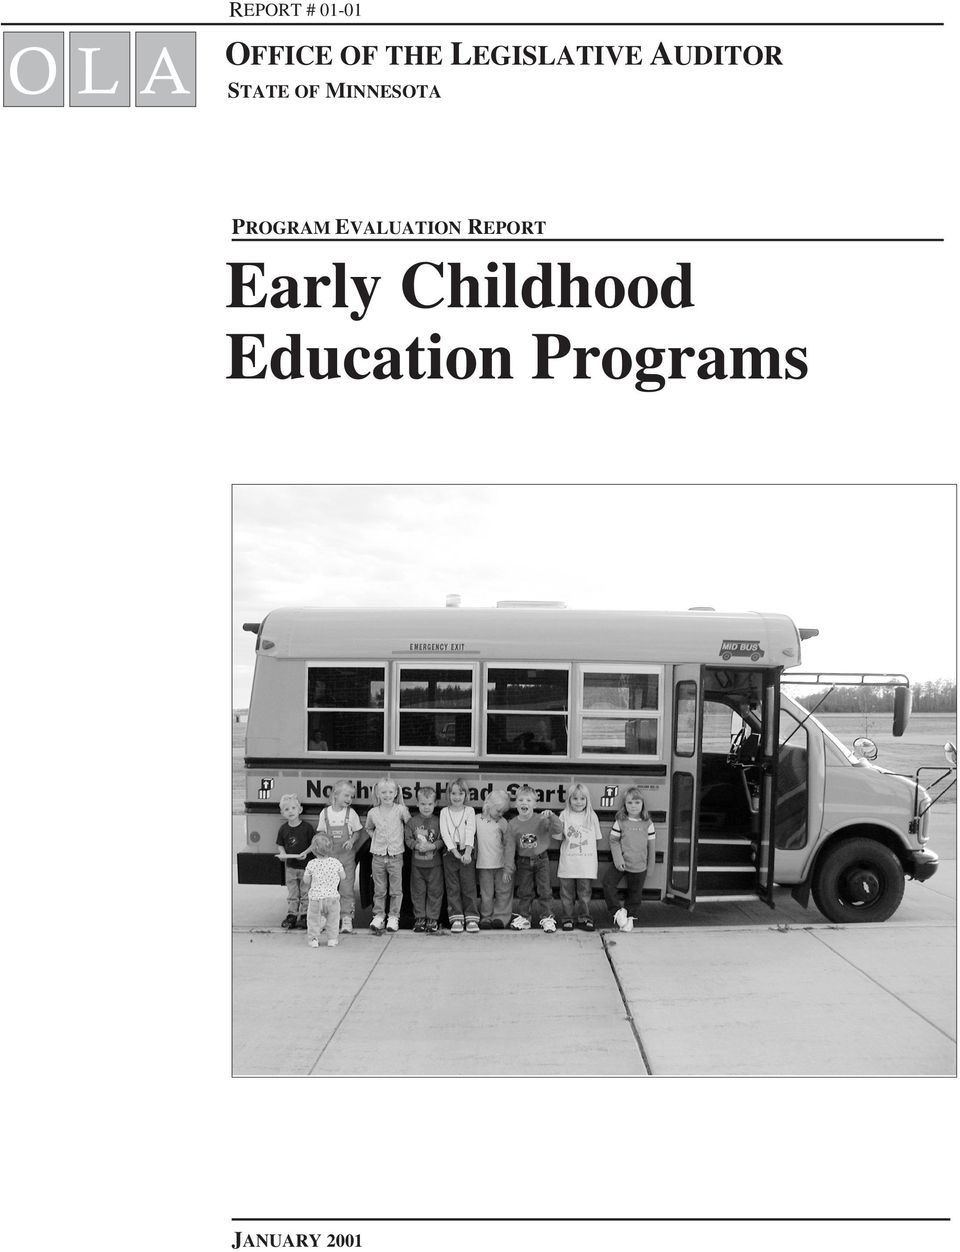 MINNESOTA PROGRAM EVALUATION REPORT